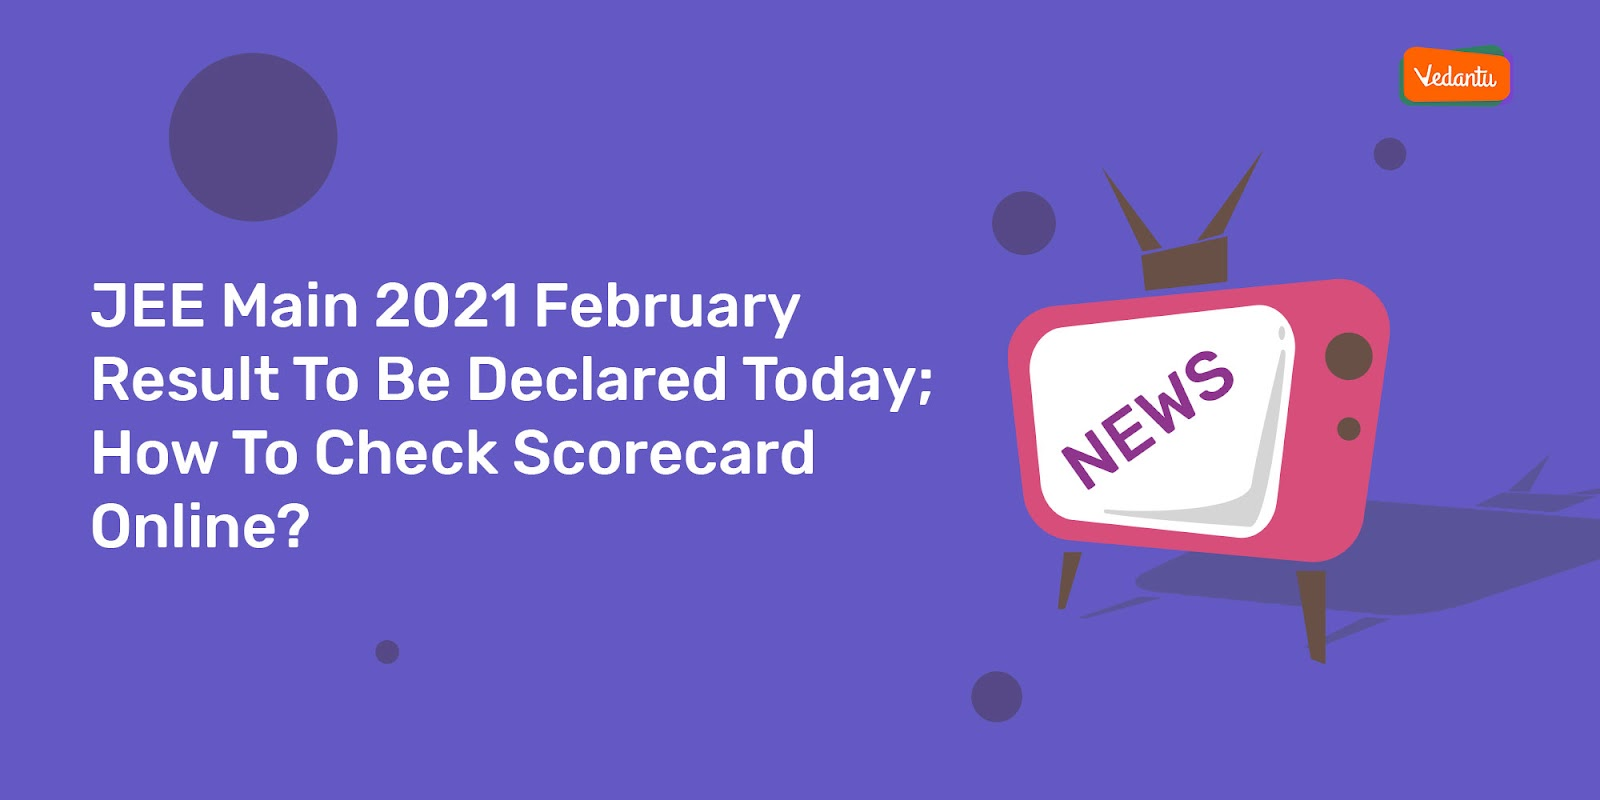 JEE Main 2021 February Result To Be Declared Today; How To Check Scorecard Online?